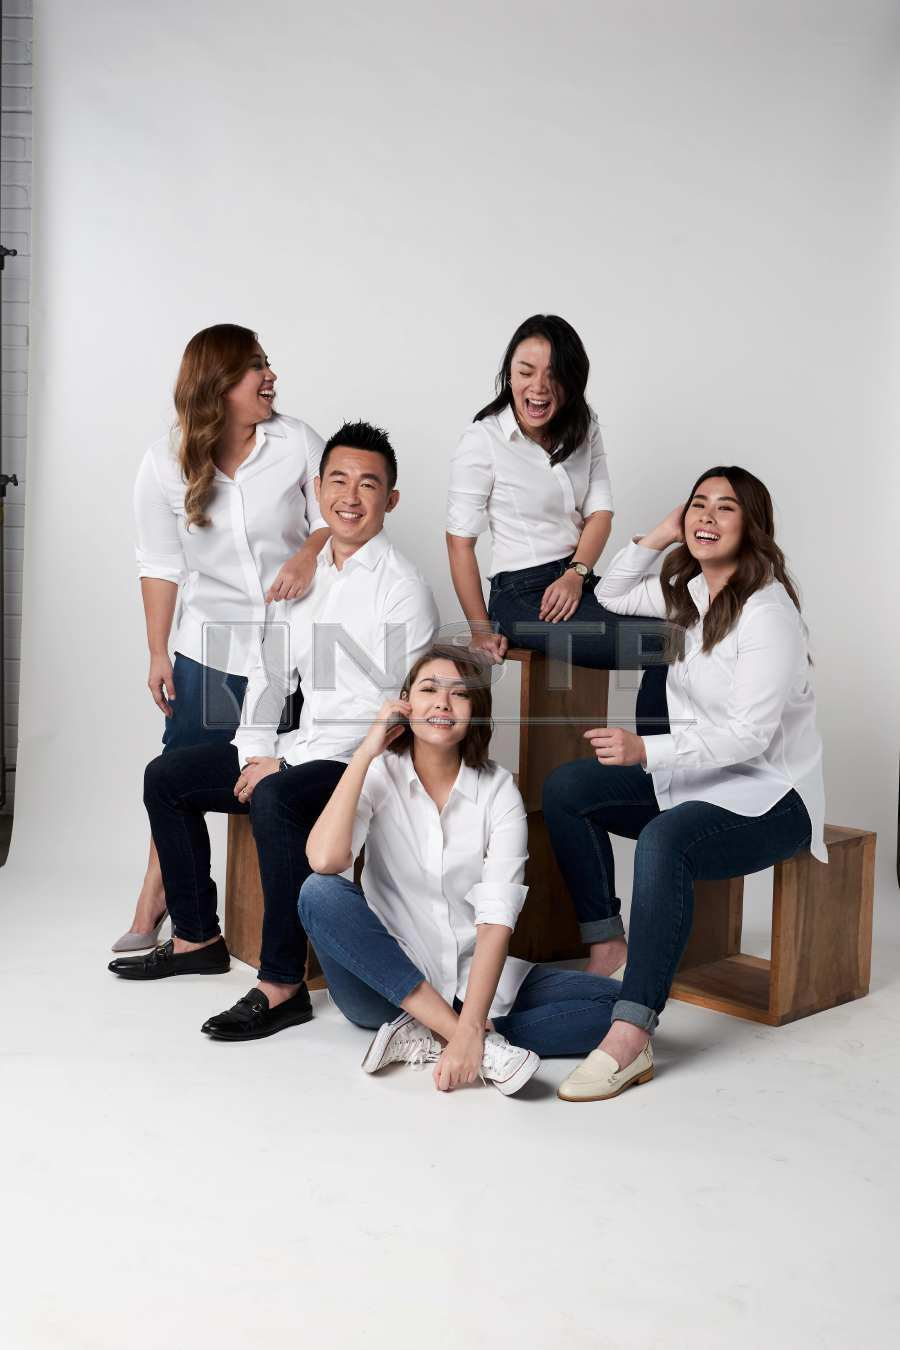 White shirts for ladies – CK Chang (seated, second from left) says the shirts are ideal for women of all shapes and sizes. (Picture credit: Oxwhite)